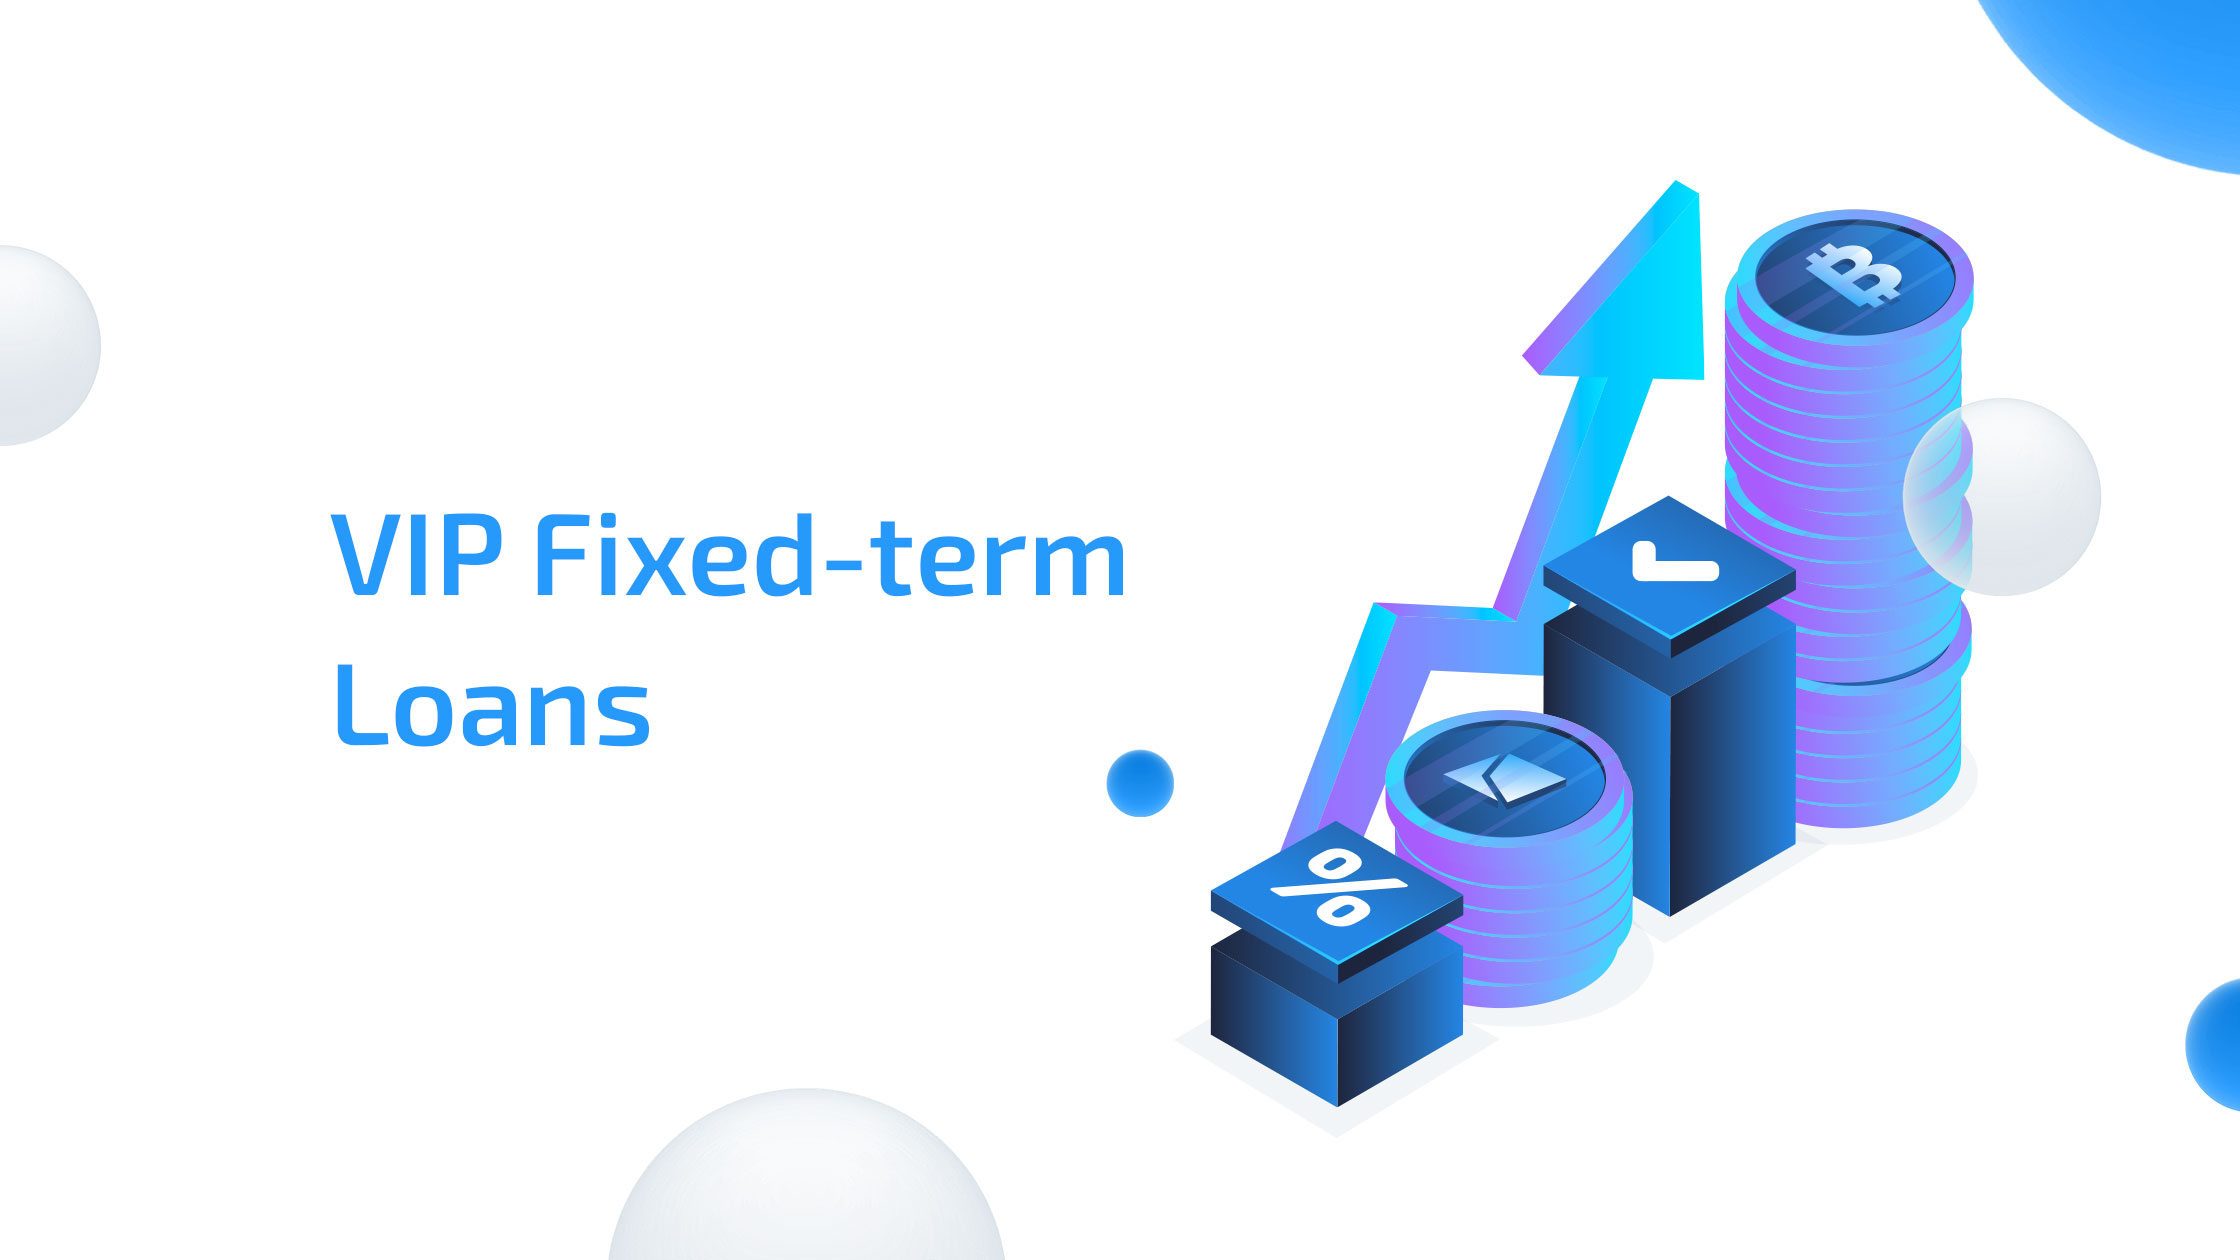 Earn Higher Yield with Hodlnaut VIP Fixed-term Loan